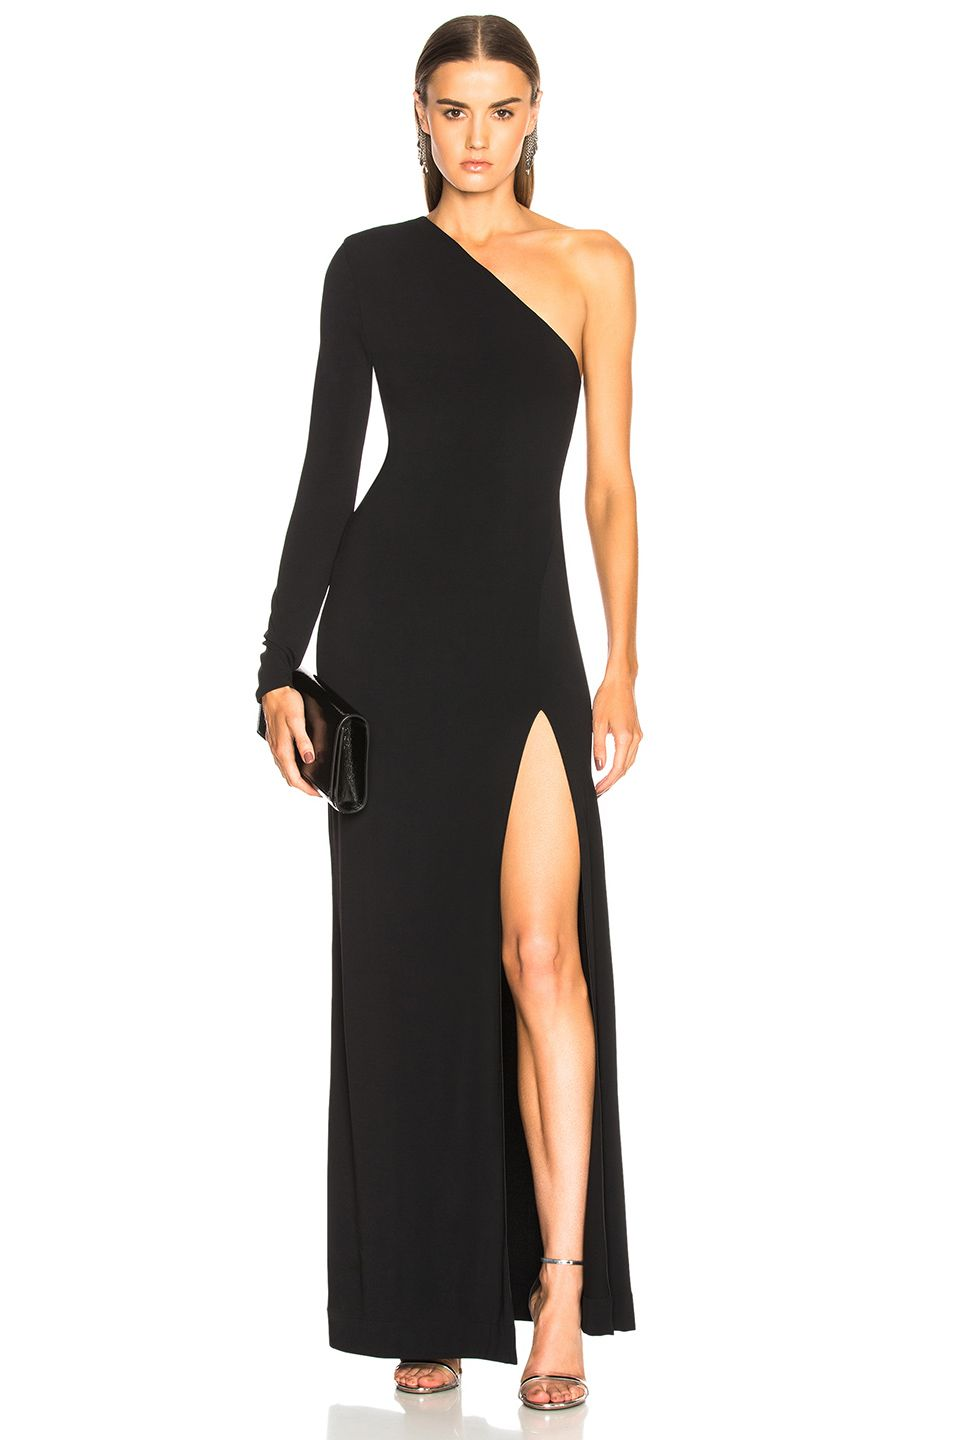 DRESSES - Long dresses Redemption New Free Shipping Sale t88Wc